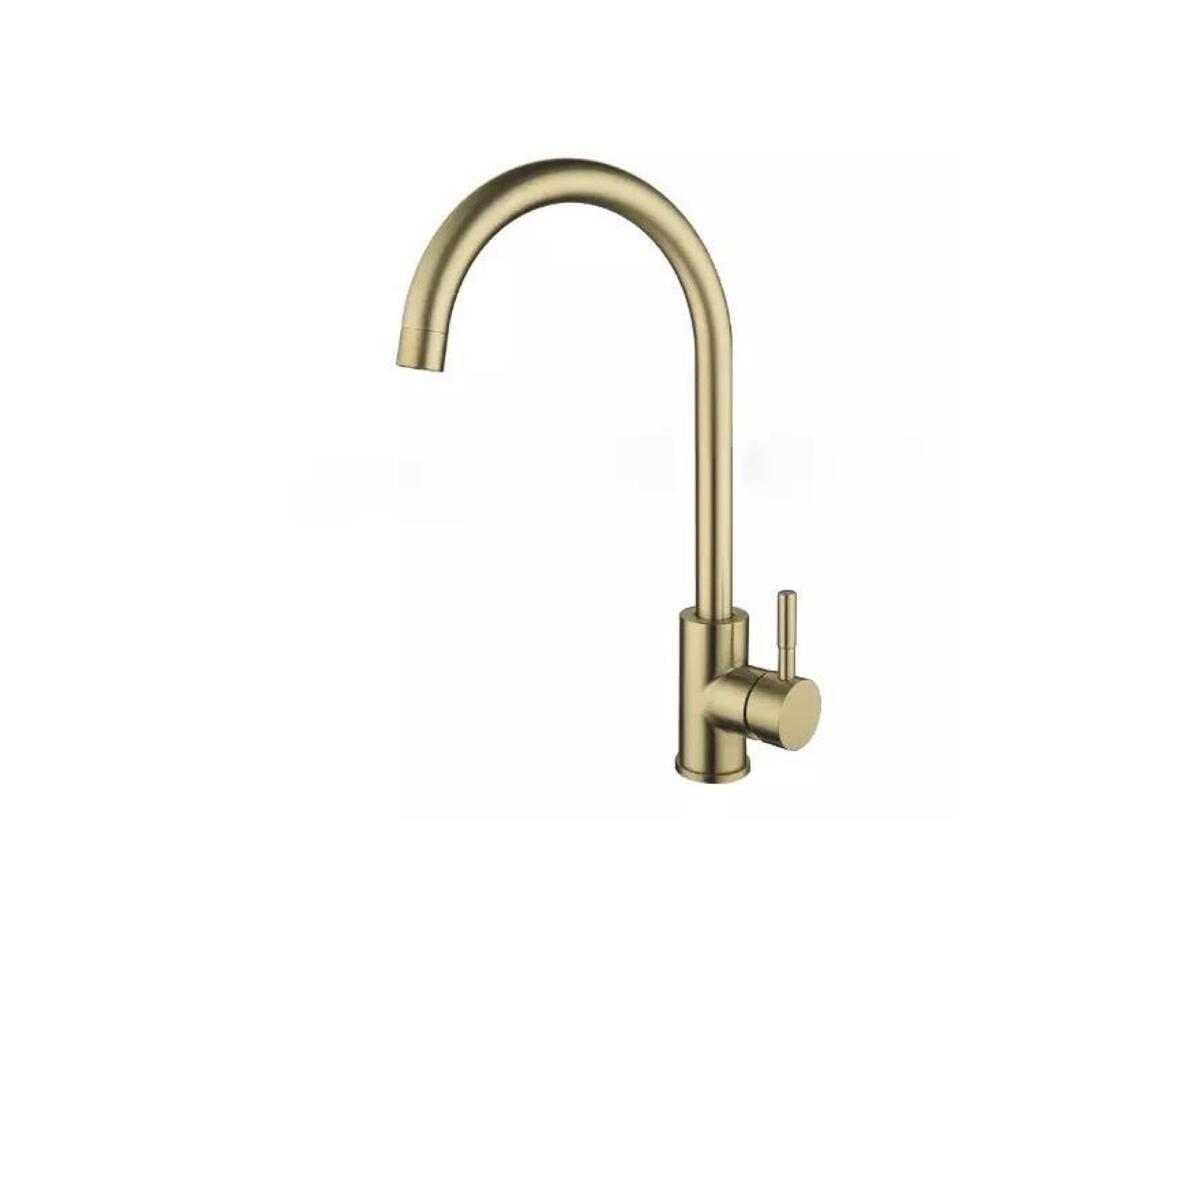 Brushed Gold Kitchen Sink Faucet, Rotates 360 Degrees- Stainless Steel